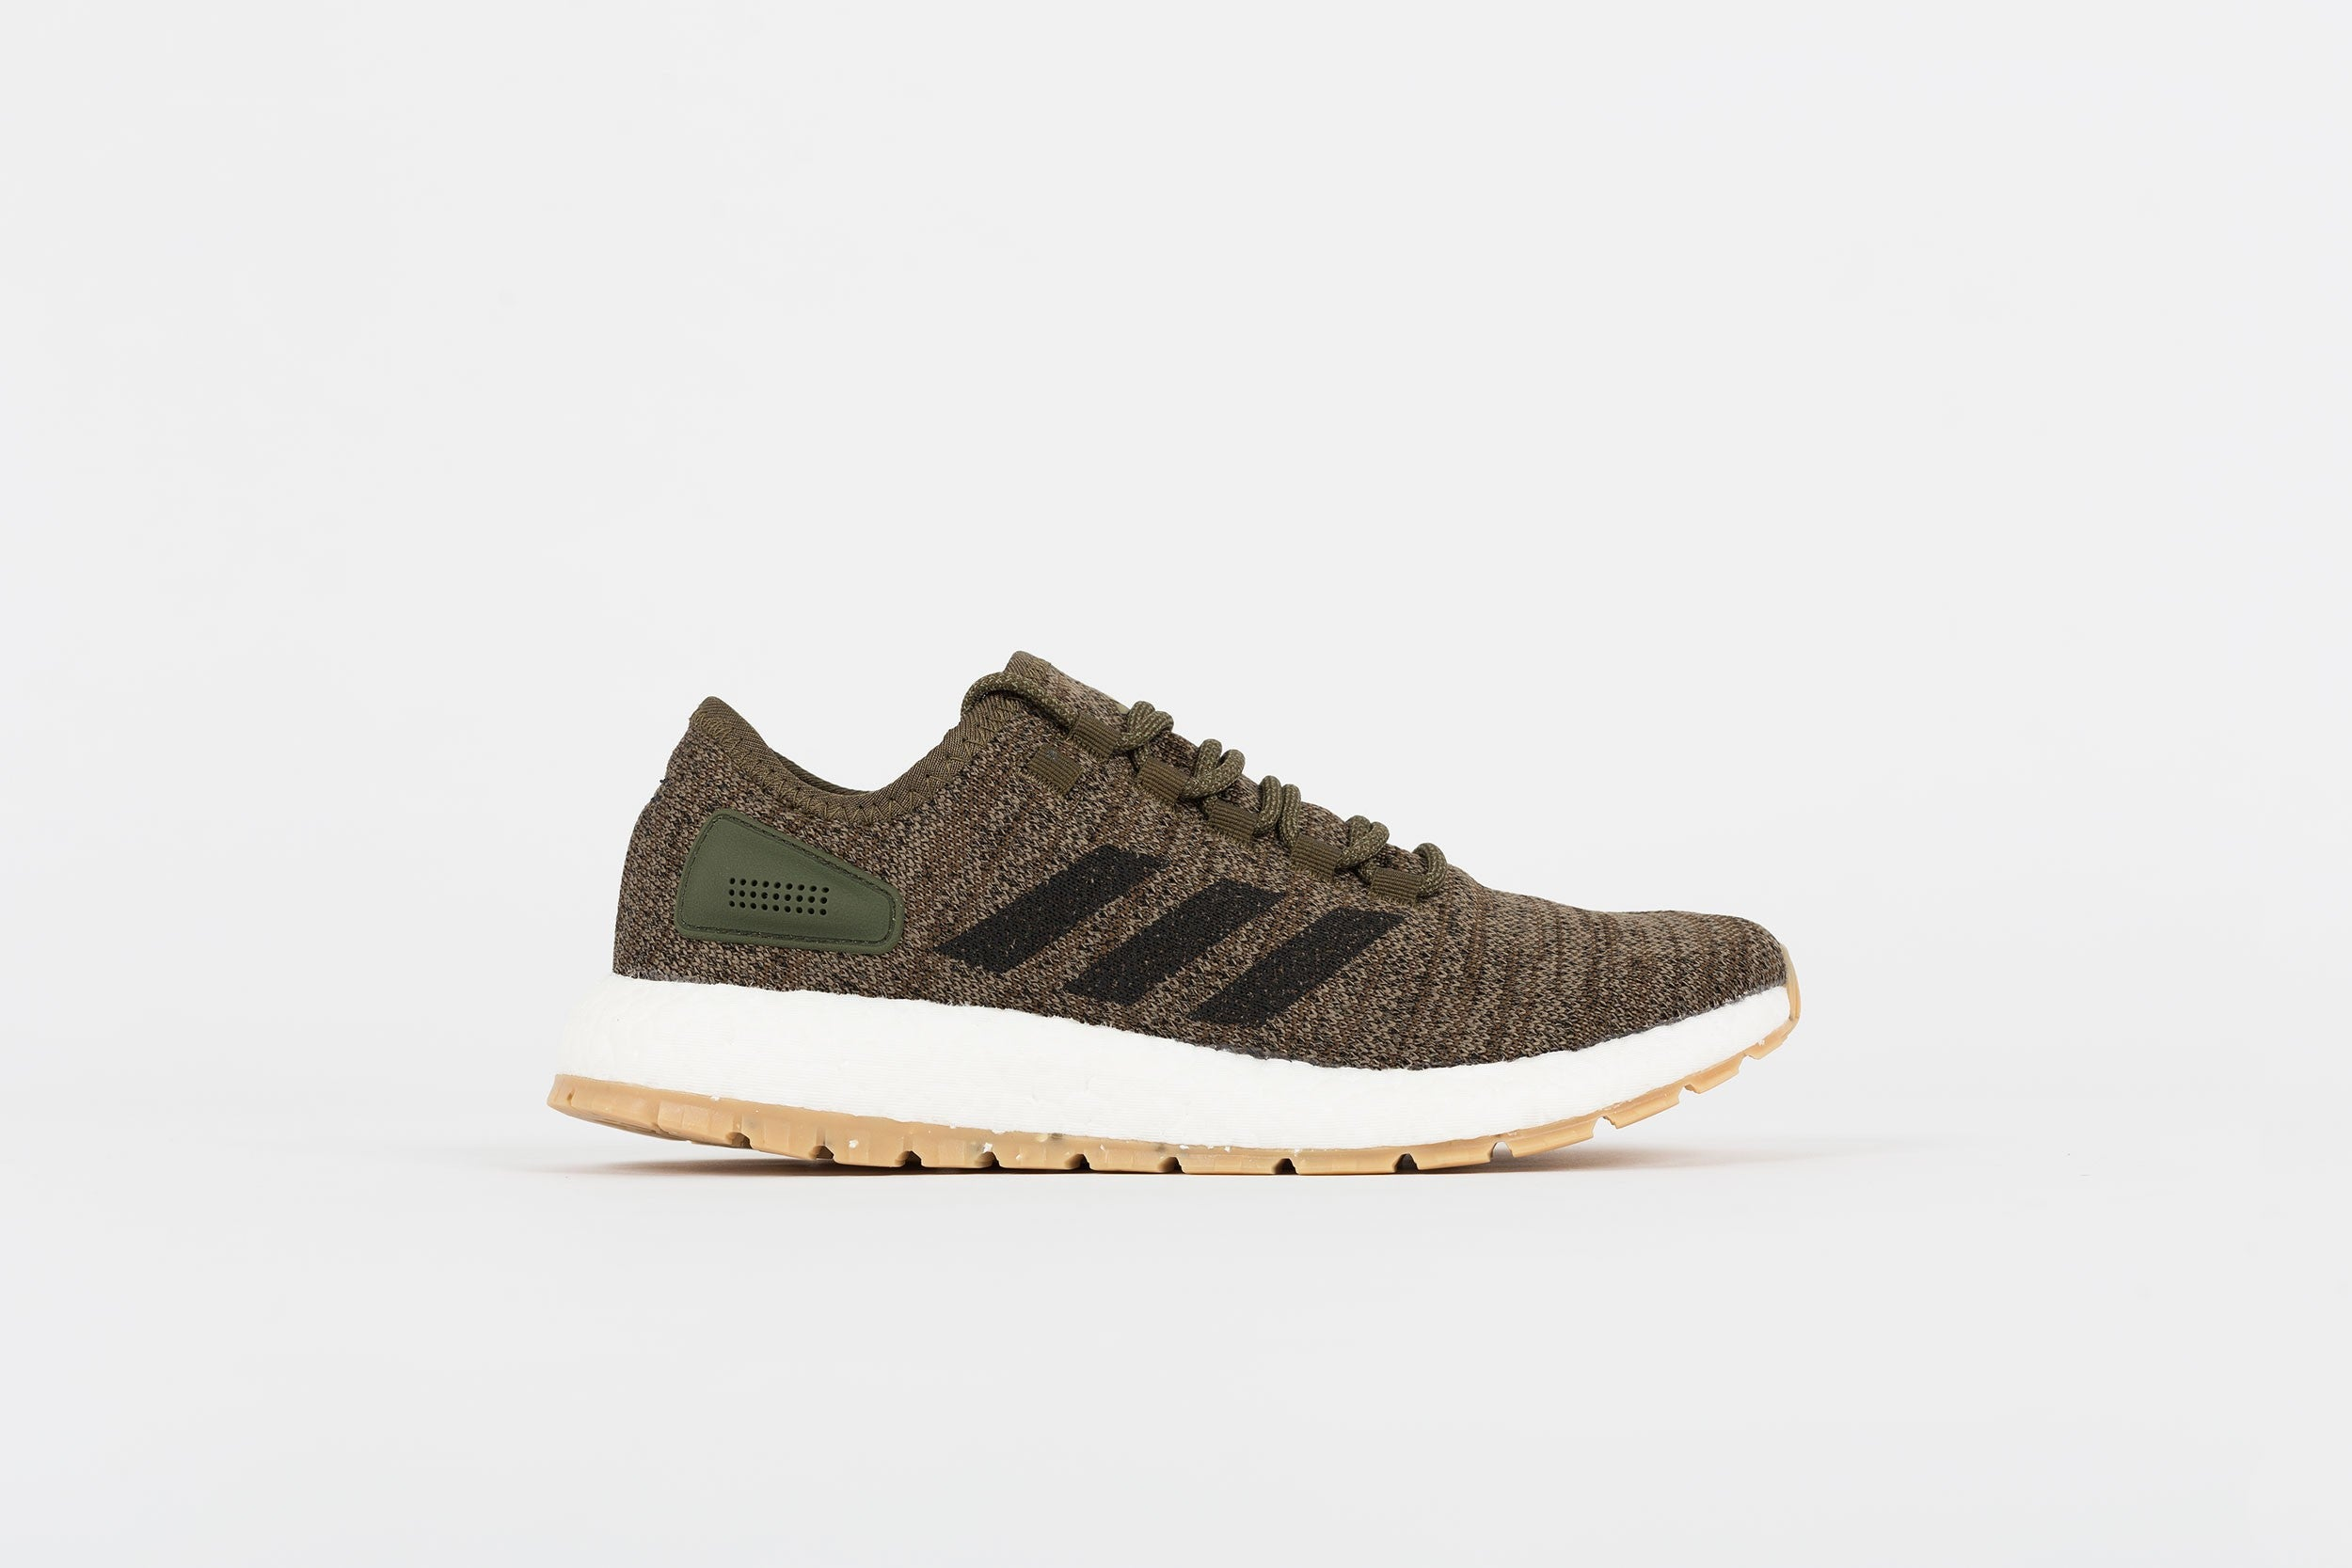 adidas Pure Boost All Terrain - Trace Cargo/Core Black/Trace Olive #S80784-Preorder Item-Navy Selected Shop